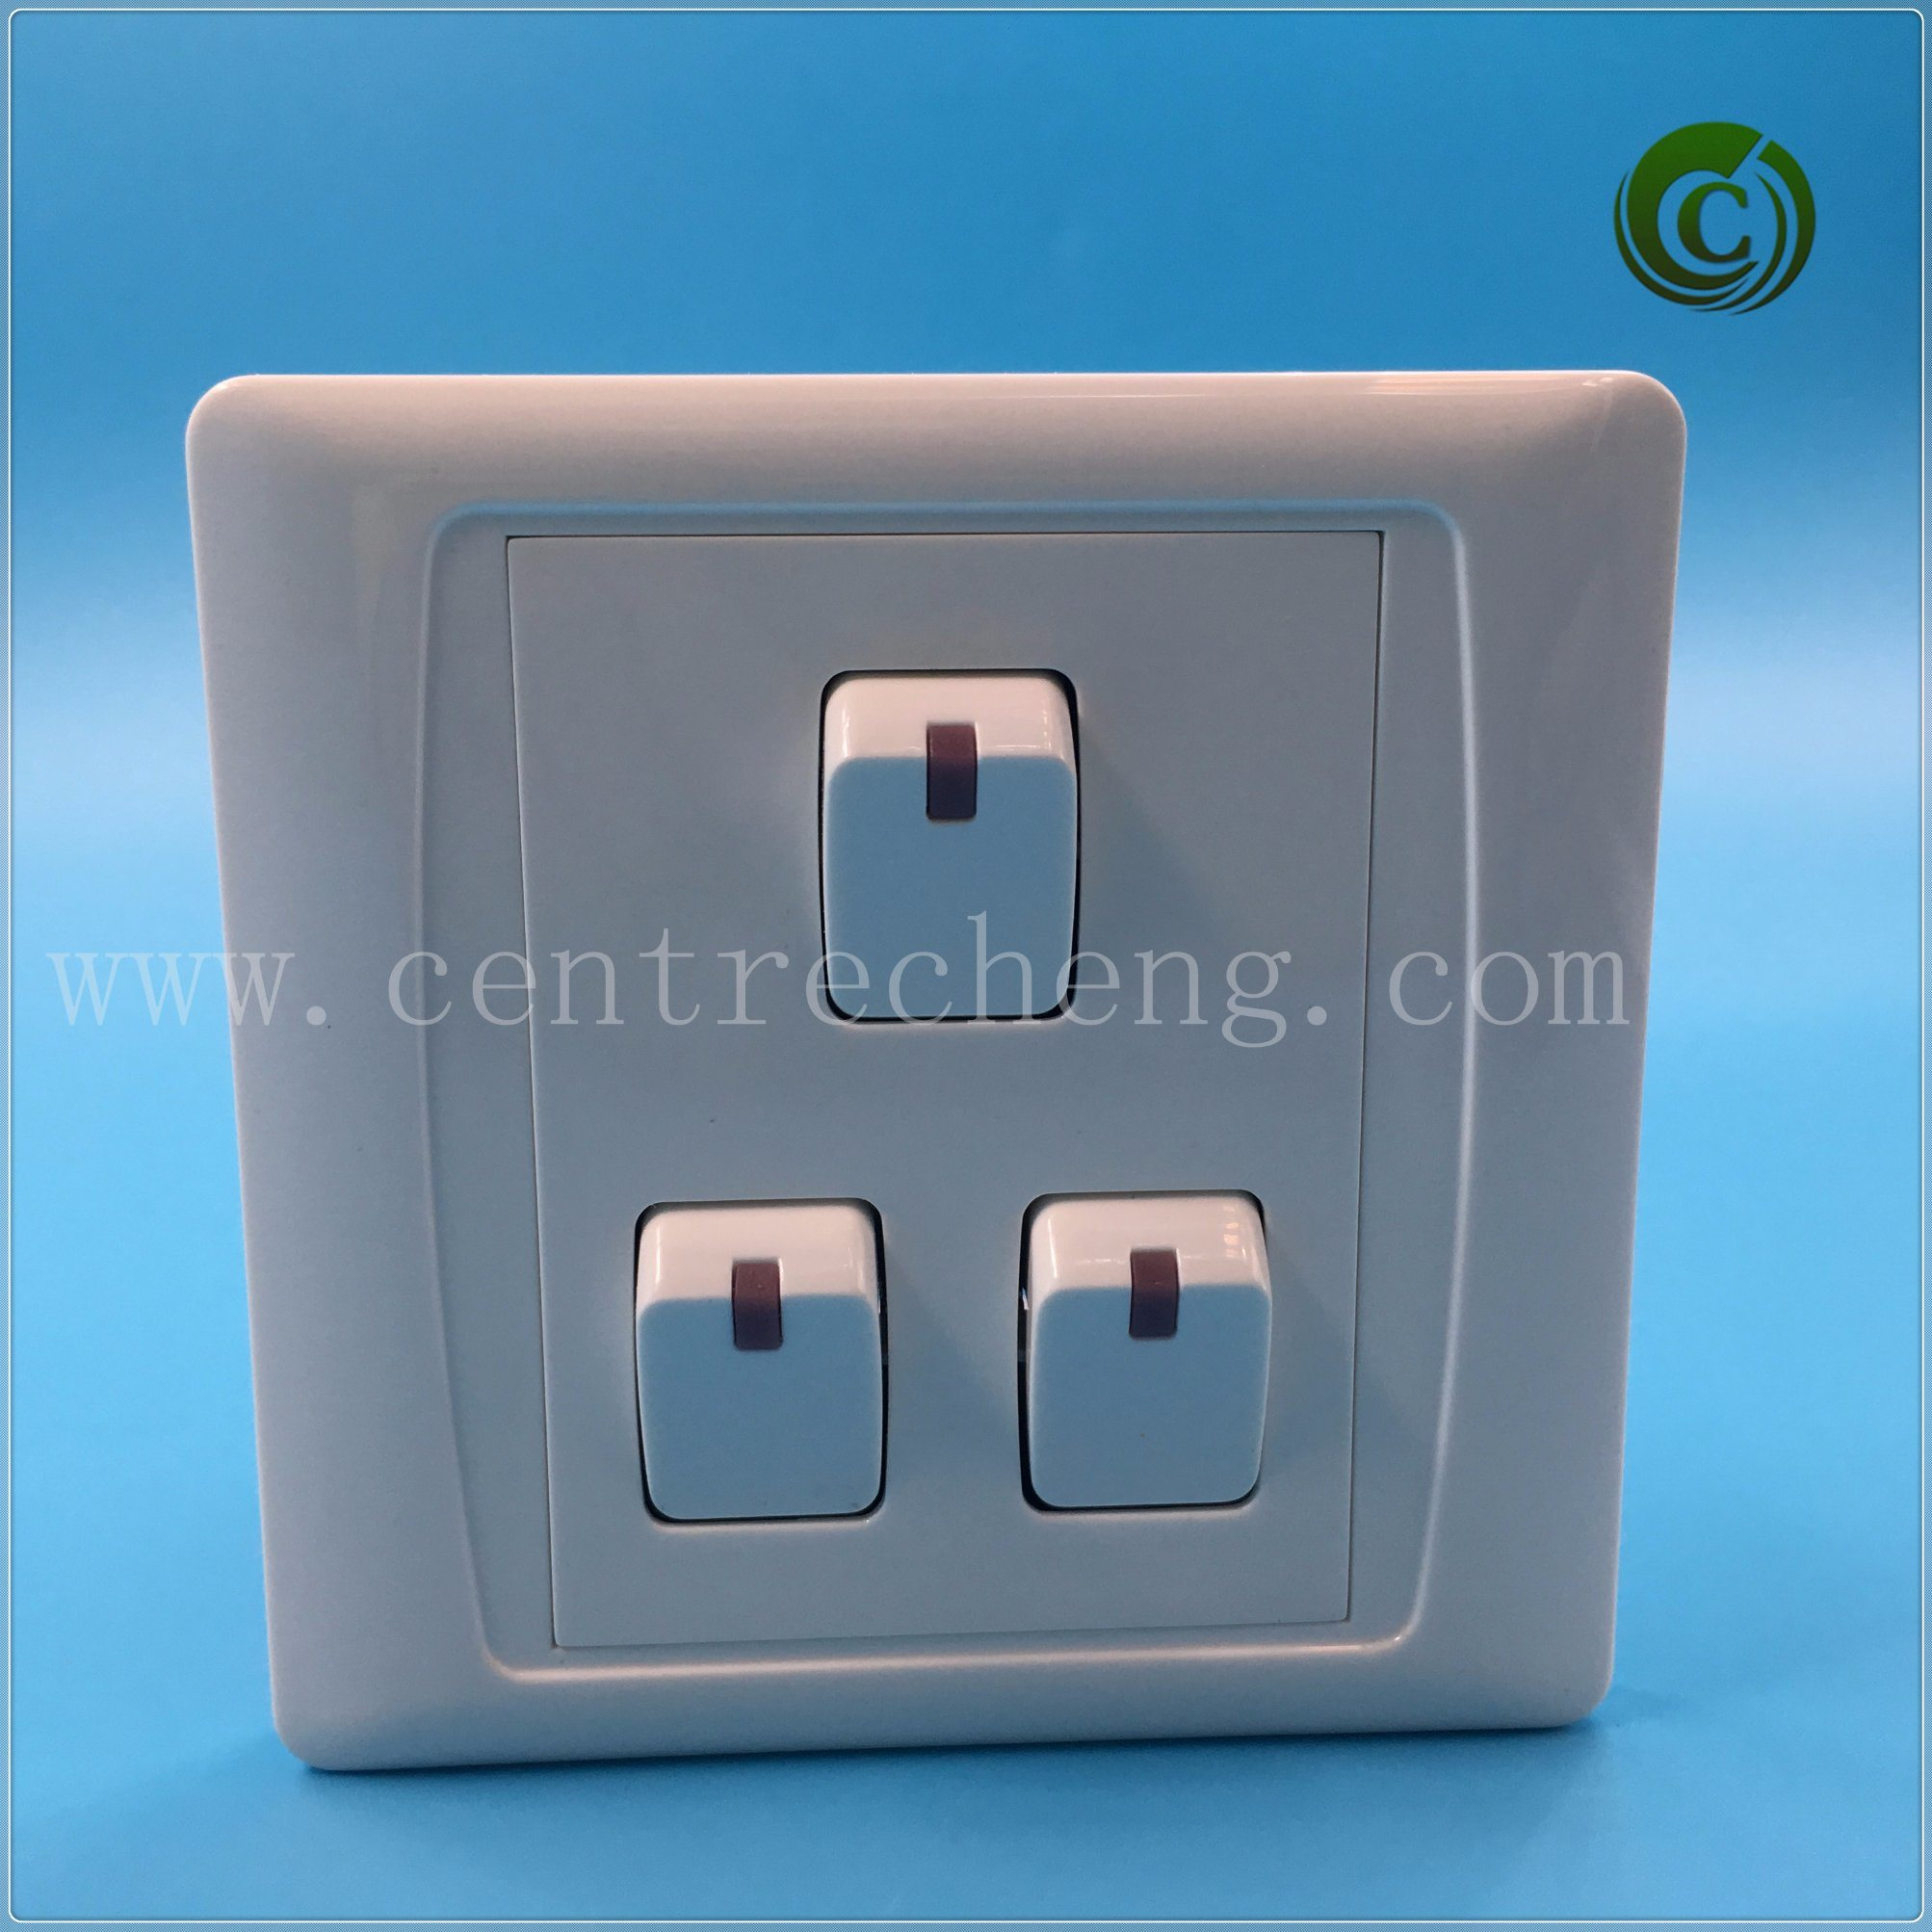 China 3 Gang 2 Way Switch White Wall Electrical For Light European Electrician Plate Hotel